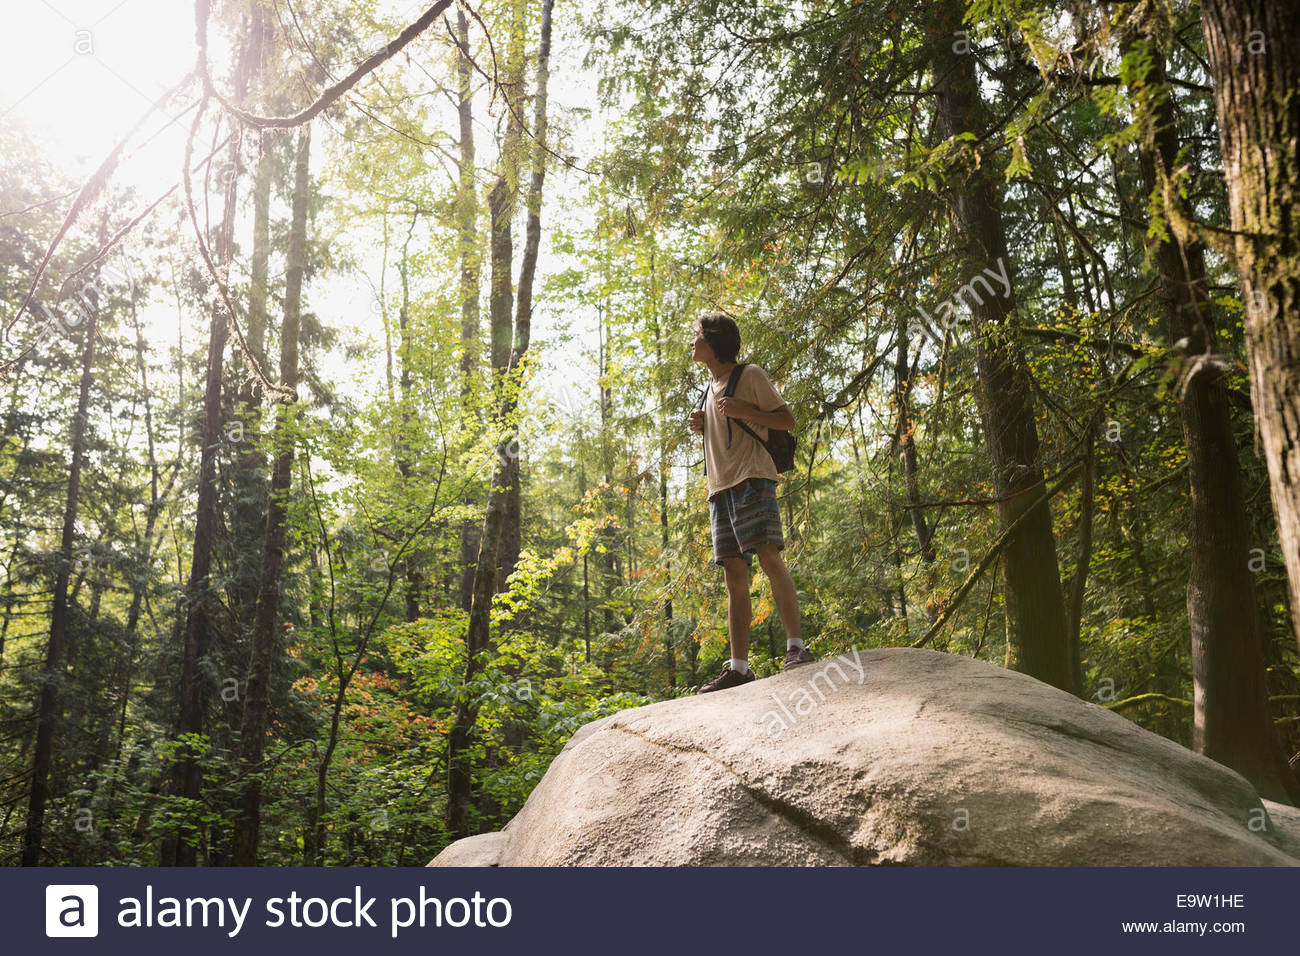 Teenage boy on rock in sunny woods - Stock Image